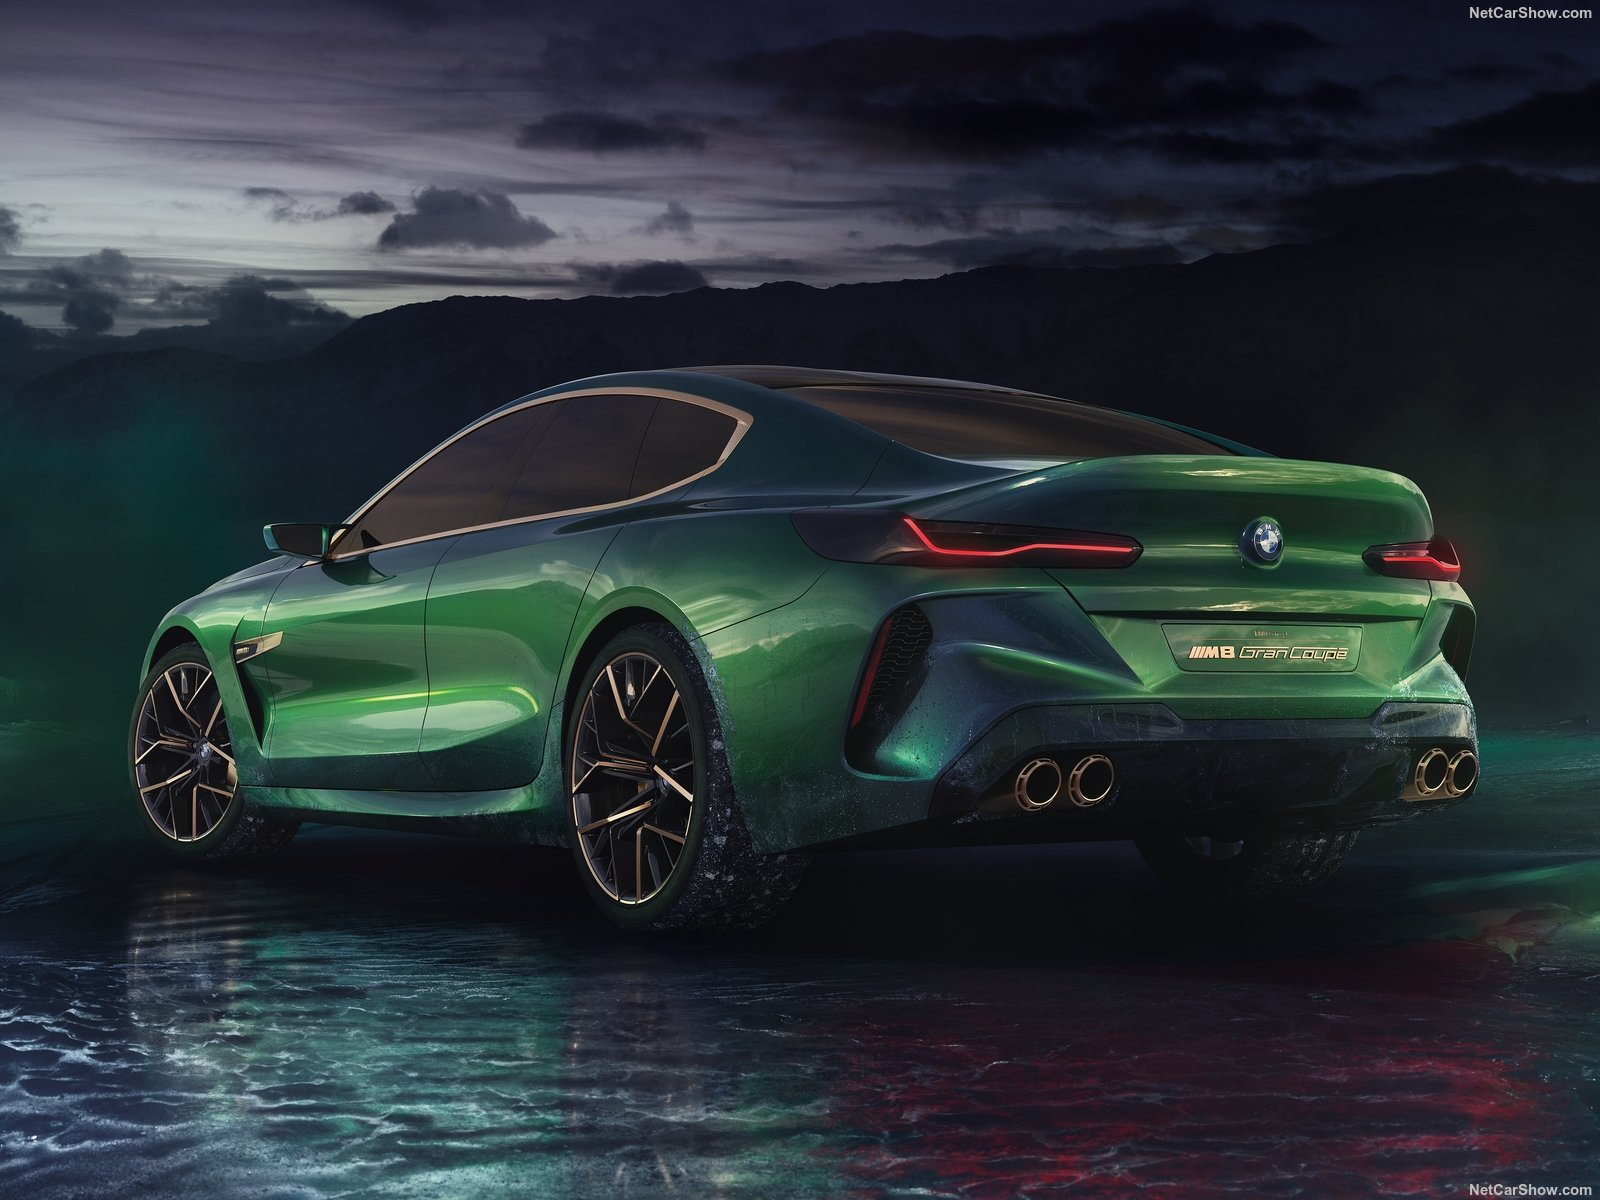 Bmw M8 Gran Coupe Picture 187077 Bmw Photo Gallery Carsbase Com